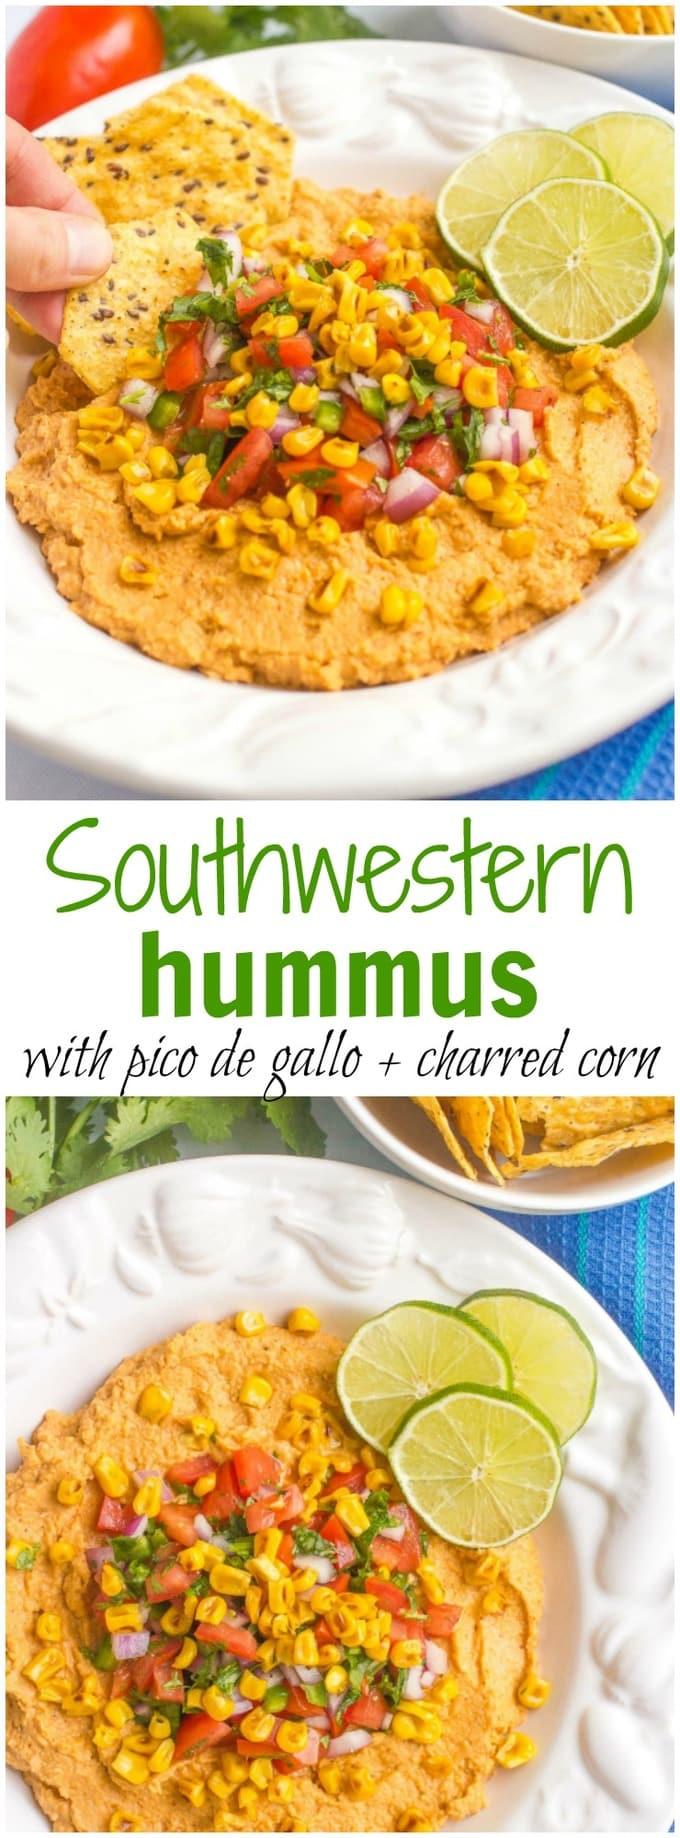 Southwestern hummus dip is topped with an easy, fresh pico de gallo and charred corn for a fun, healthy and tasty appetizer!